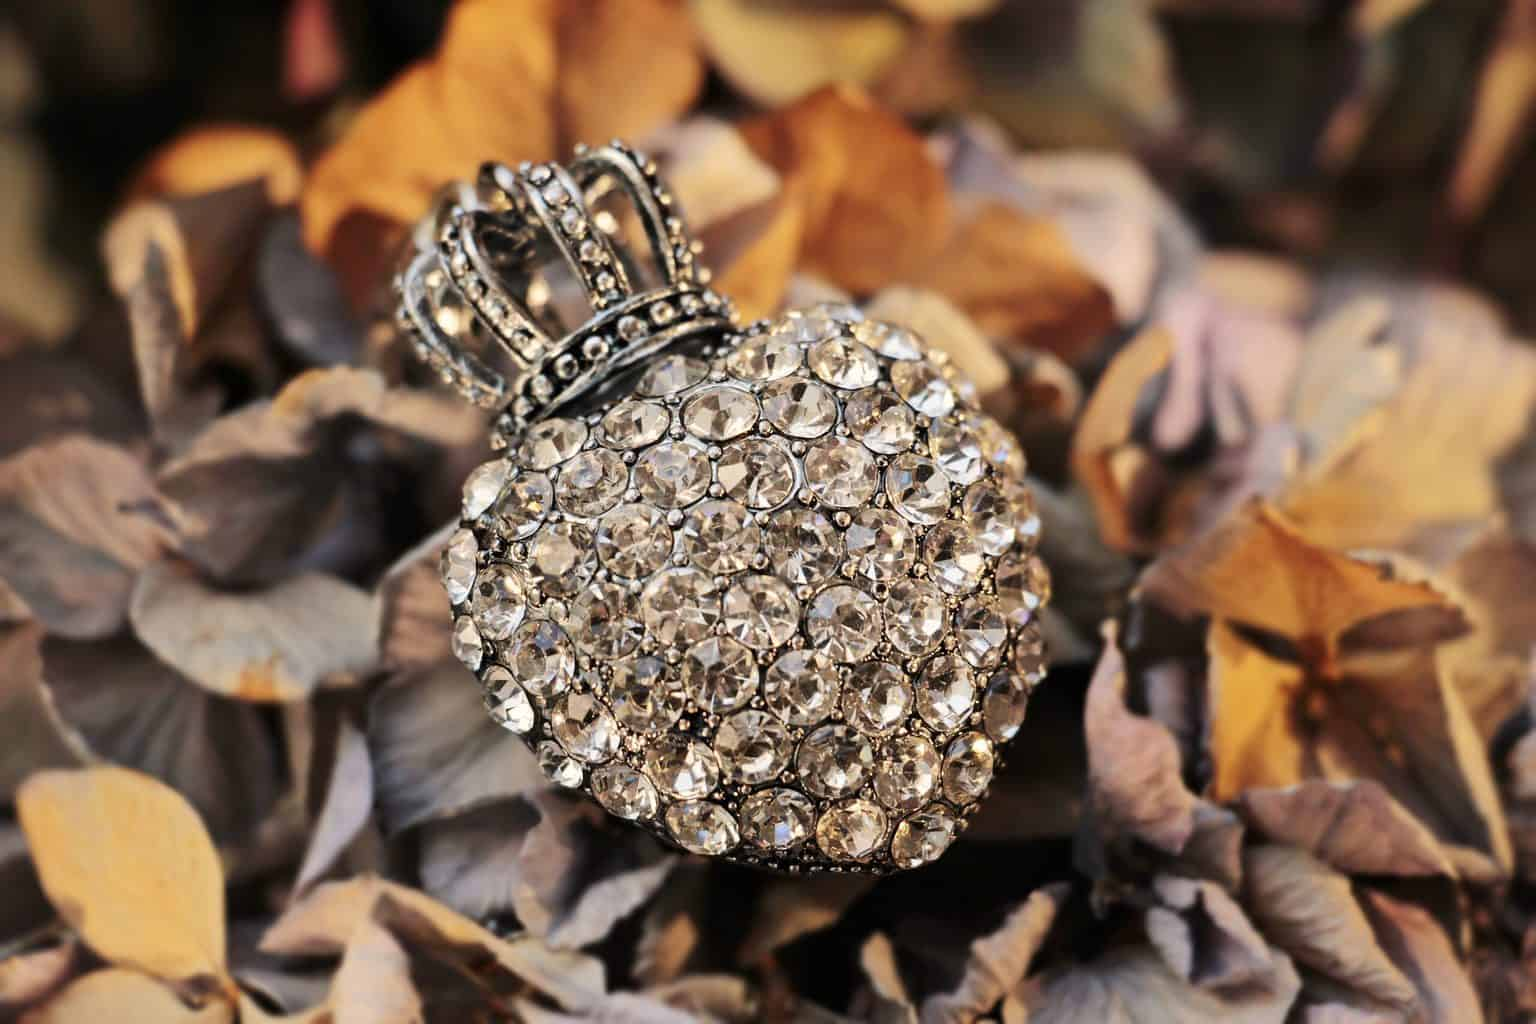 A heart shaped jewelry with rhinestones and a small crown